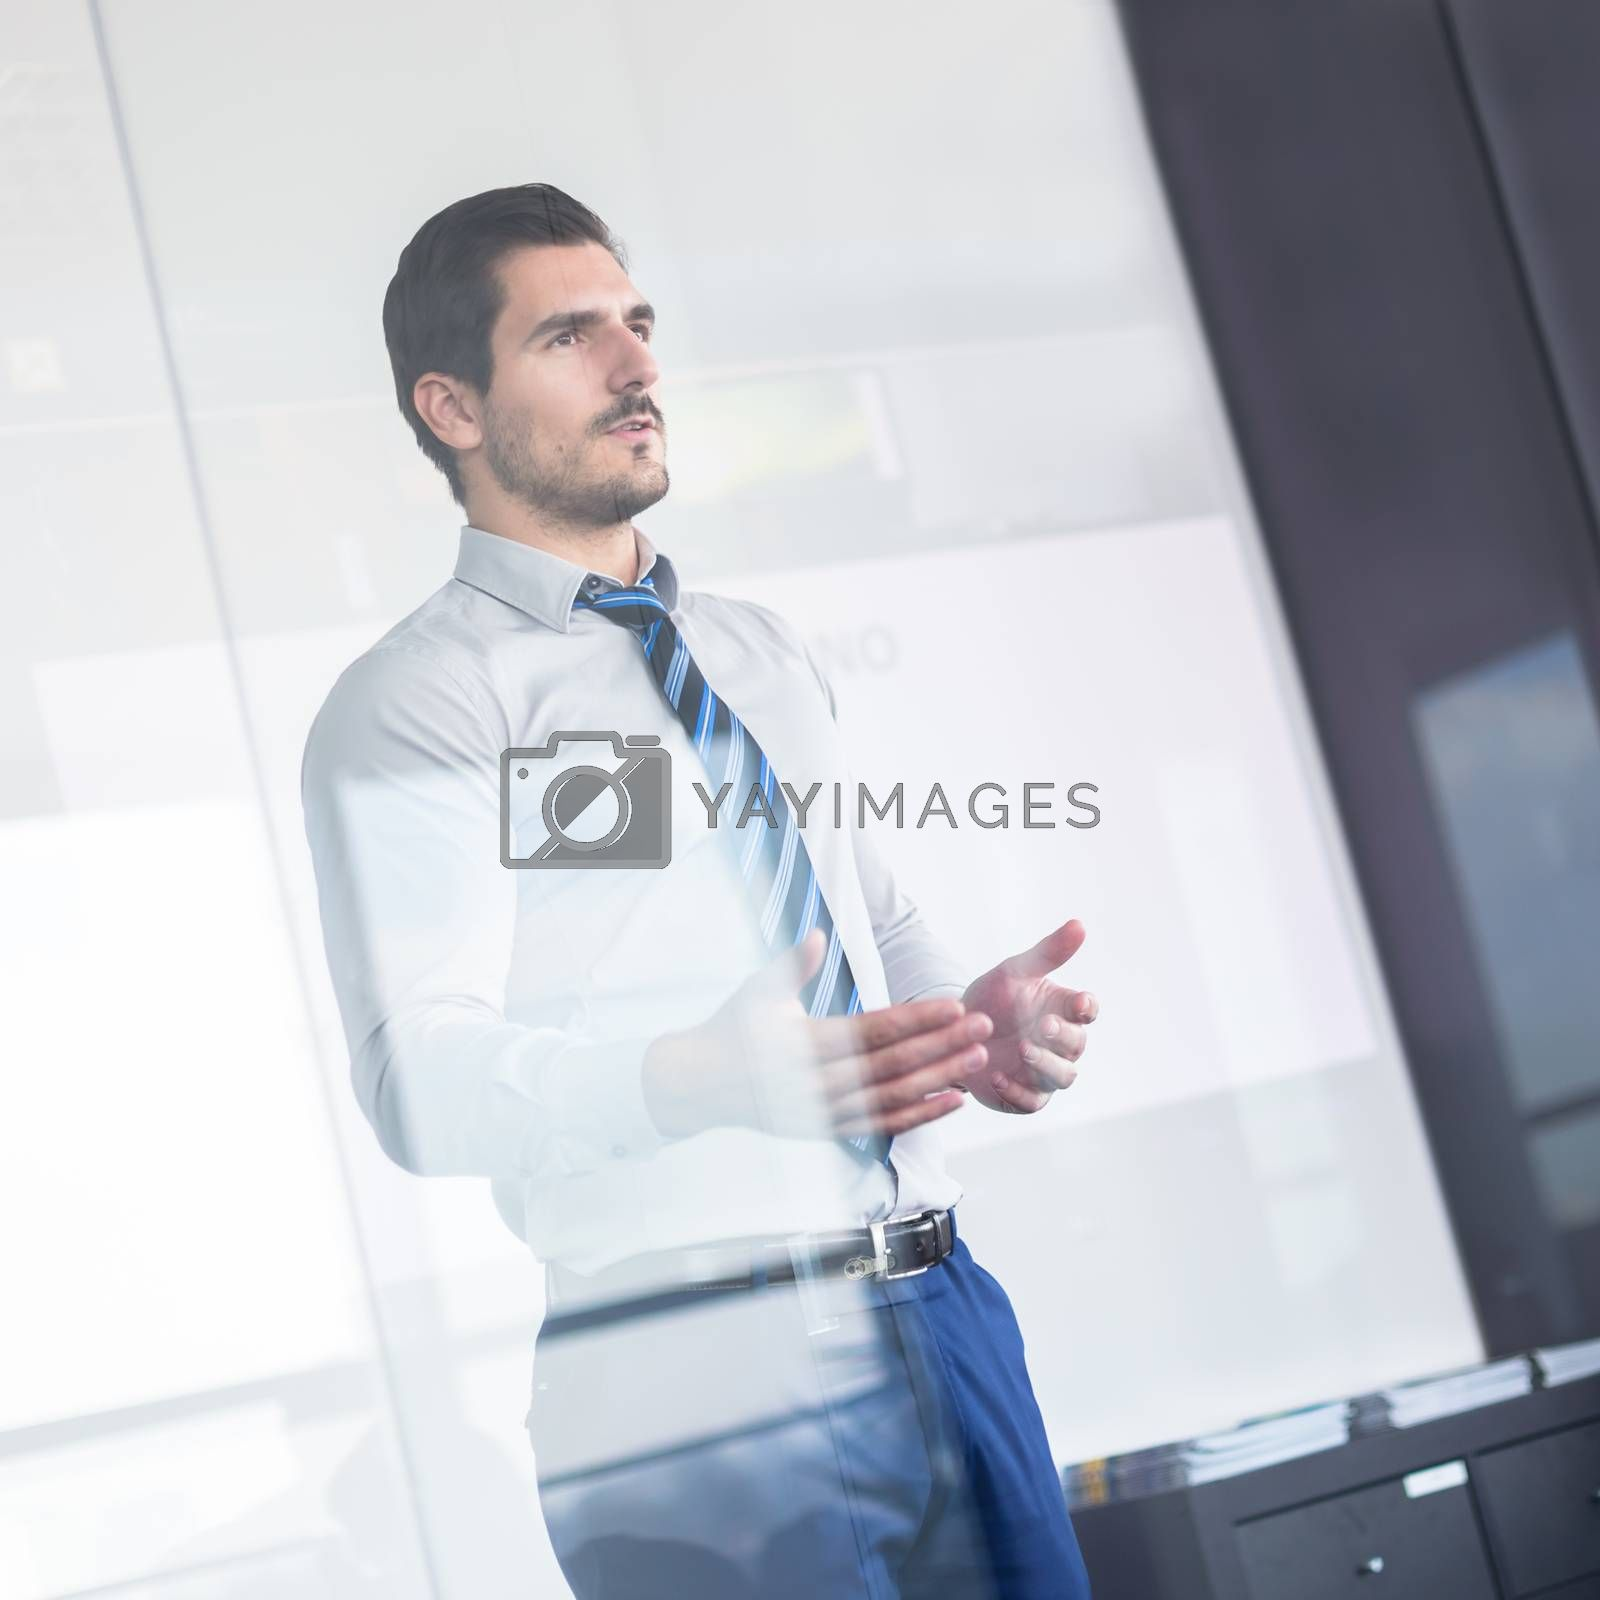 Business man making a presentation in front of whiteboard. View through glass.